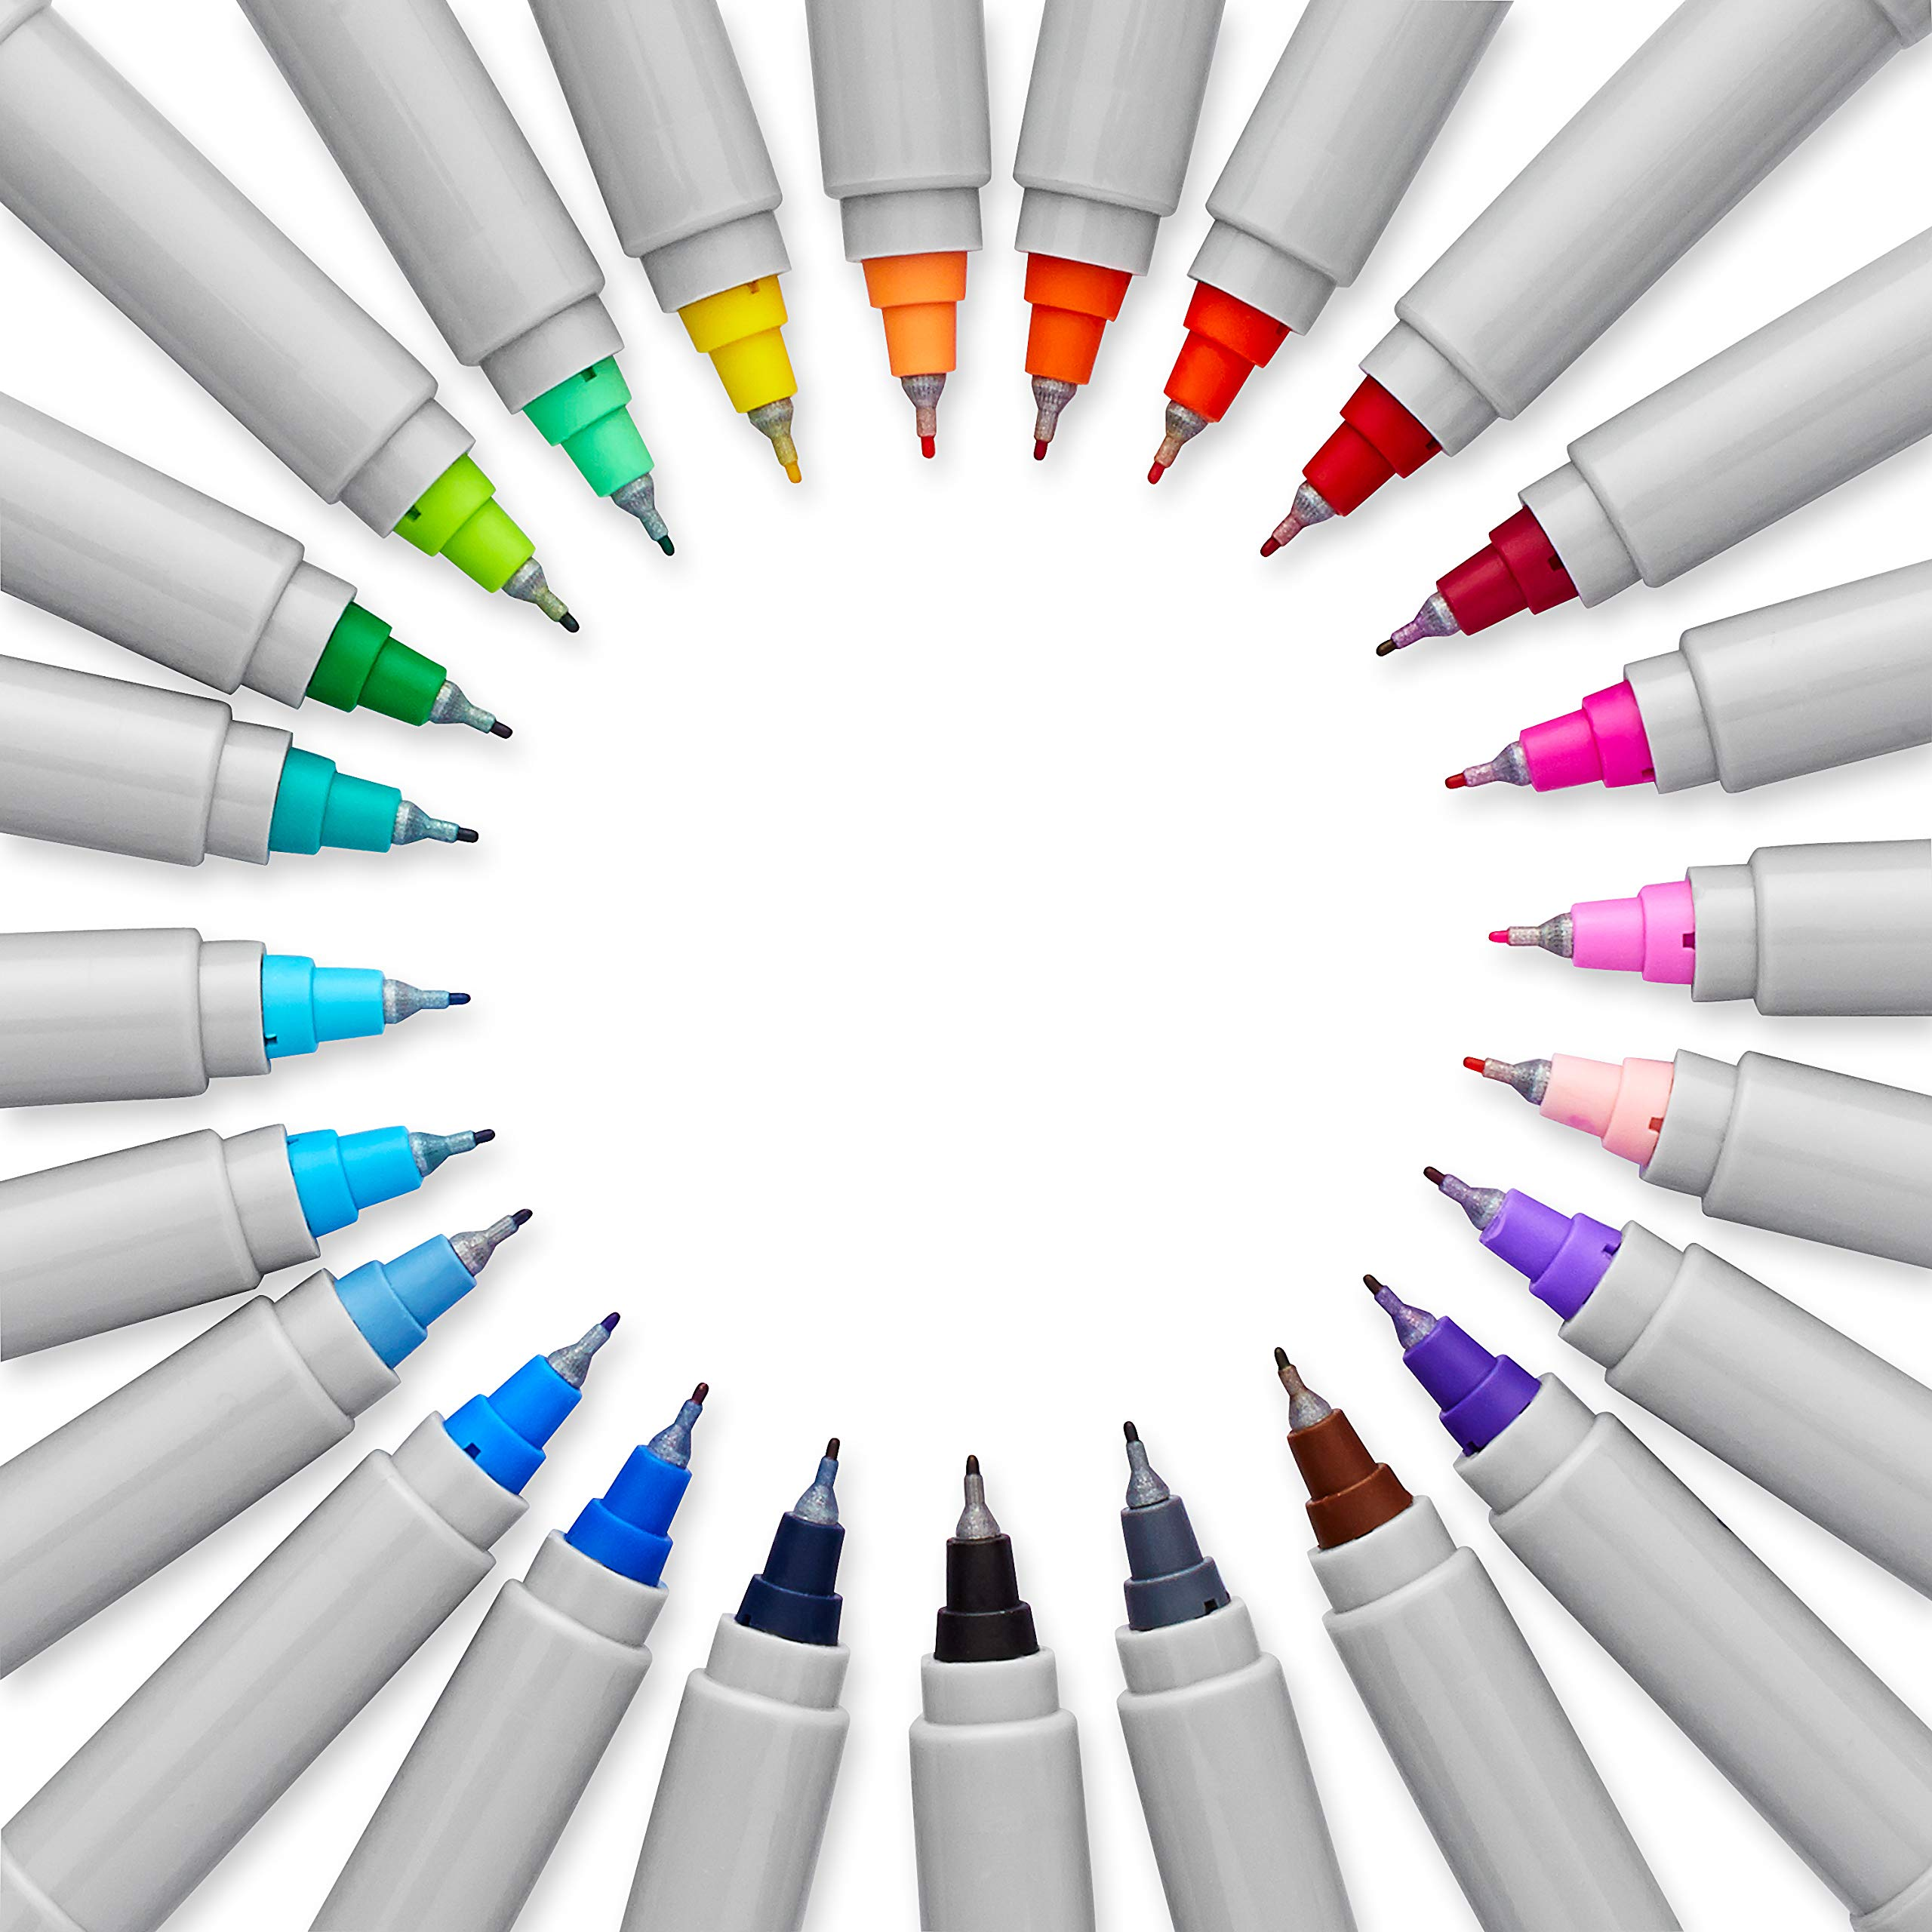 Sharpie Permanent Markers, Ultra Fine Point, Assorted Colors, 36 Count by Sharpie (Image #4)